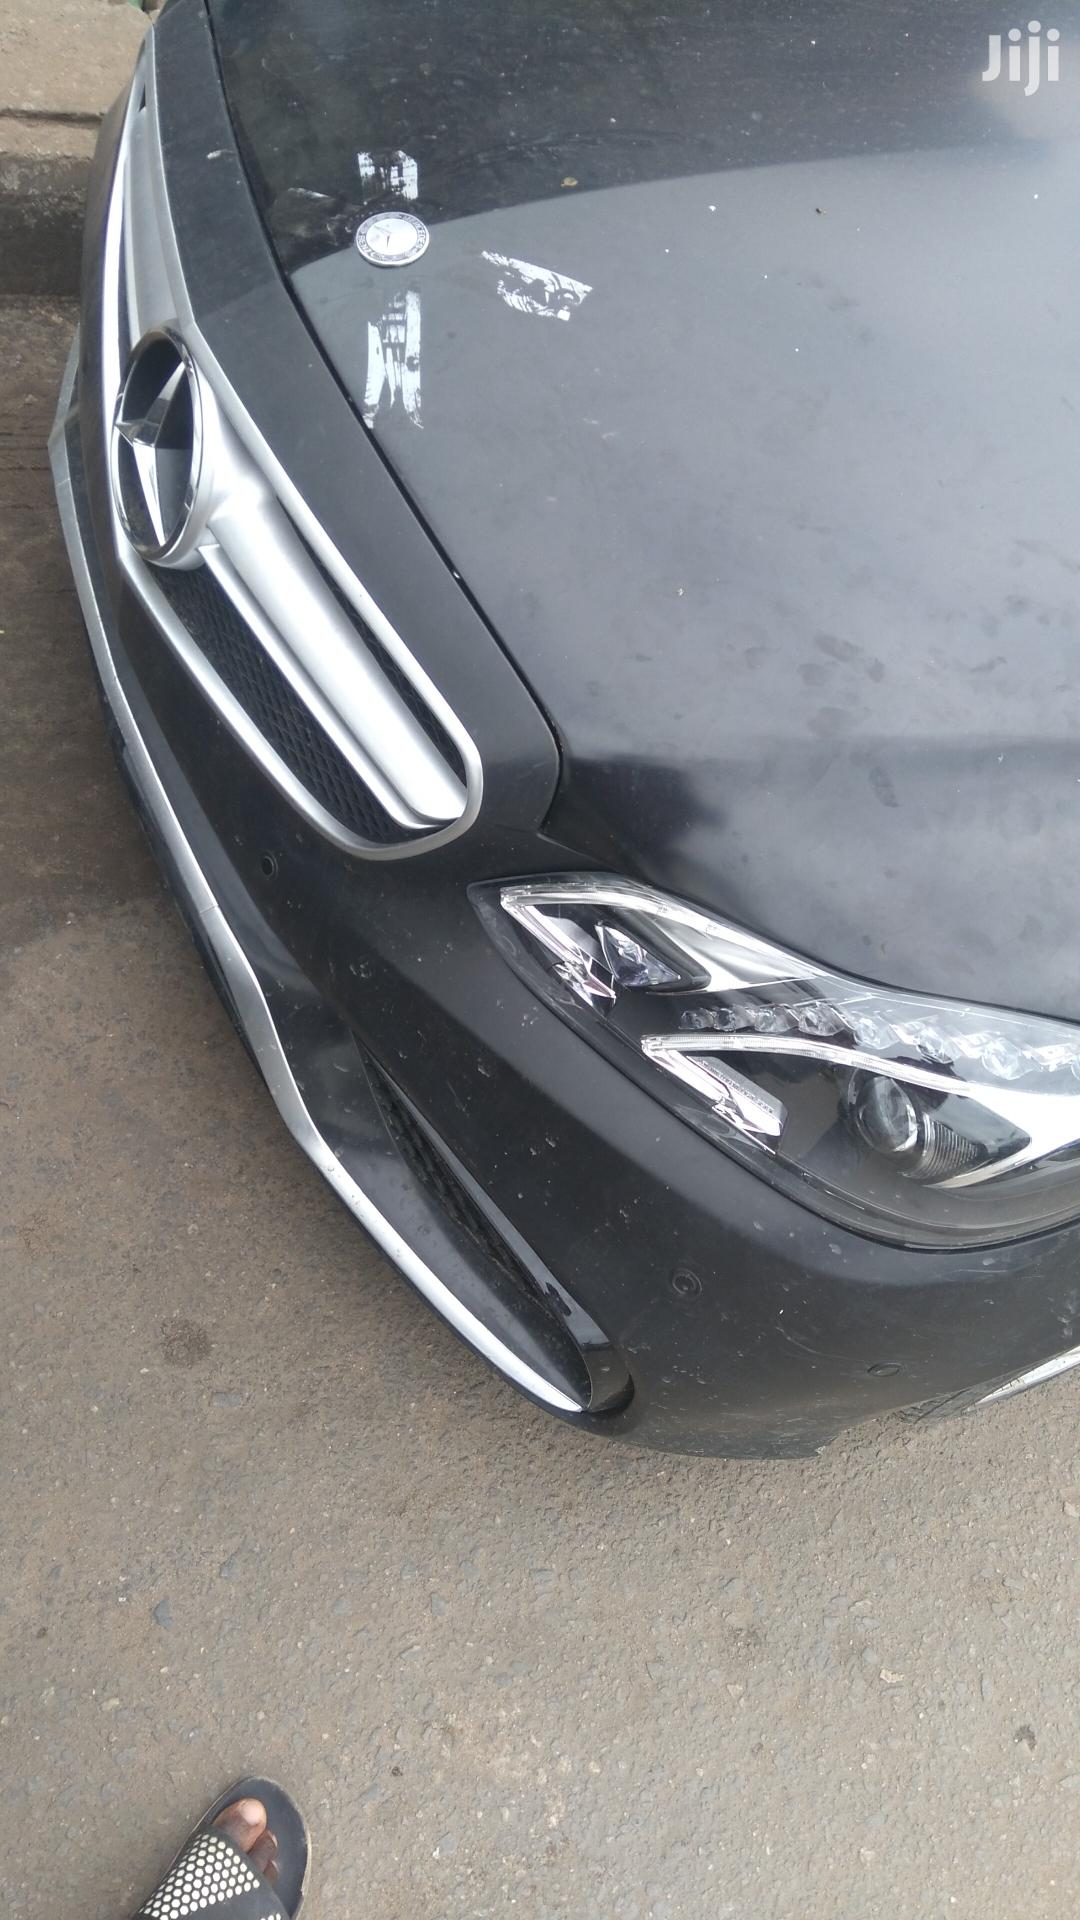 Mercedes Benz E350 Upgrade To 2016 | Automotive Services for sale in Amuwo-Odofin, Lagos State, Nigeria